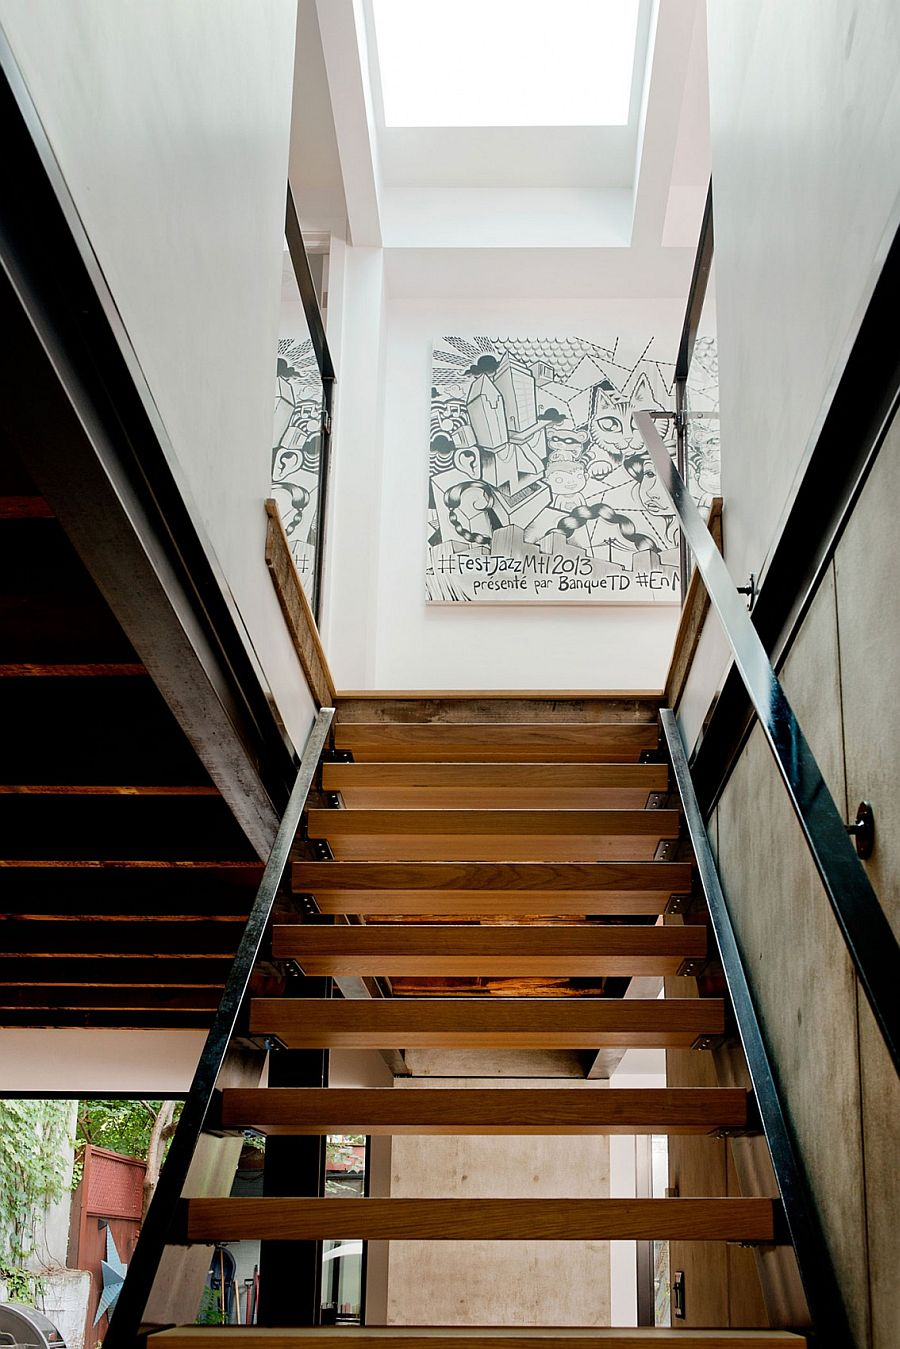 Wall art adds a hint of playful charm to the staircase landing